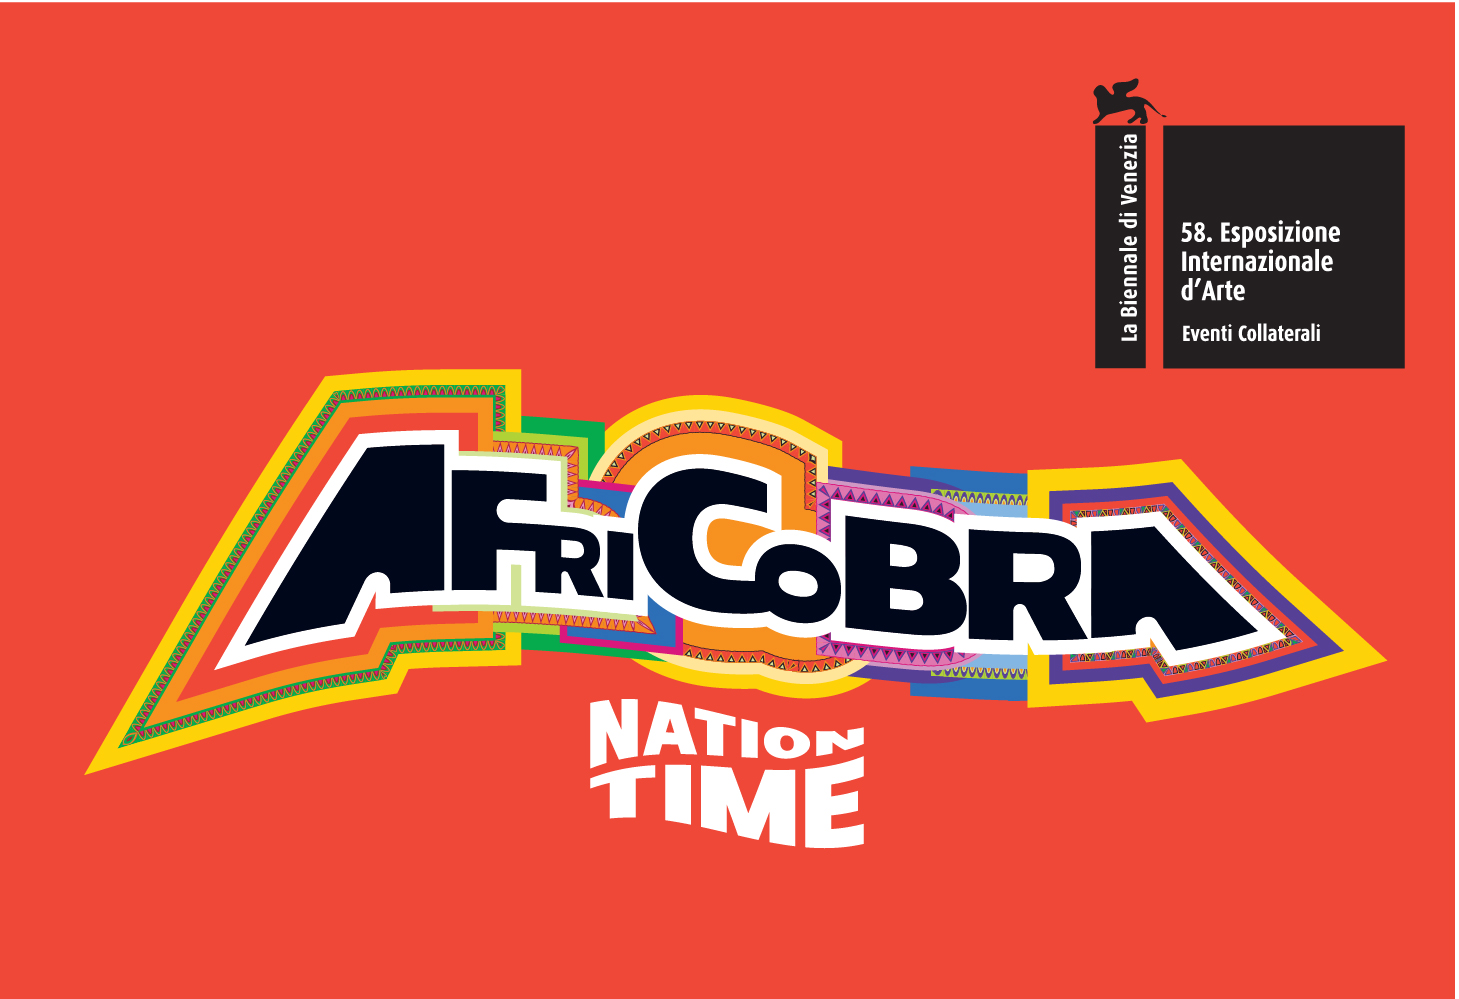 AFRICOBRA: Nation Time official Collateral Event promotion materials for 2019 Venice Biennale